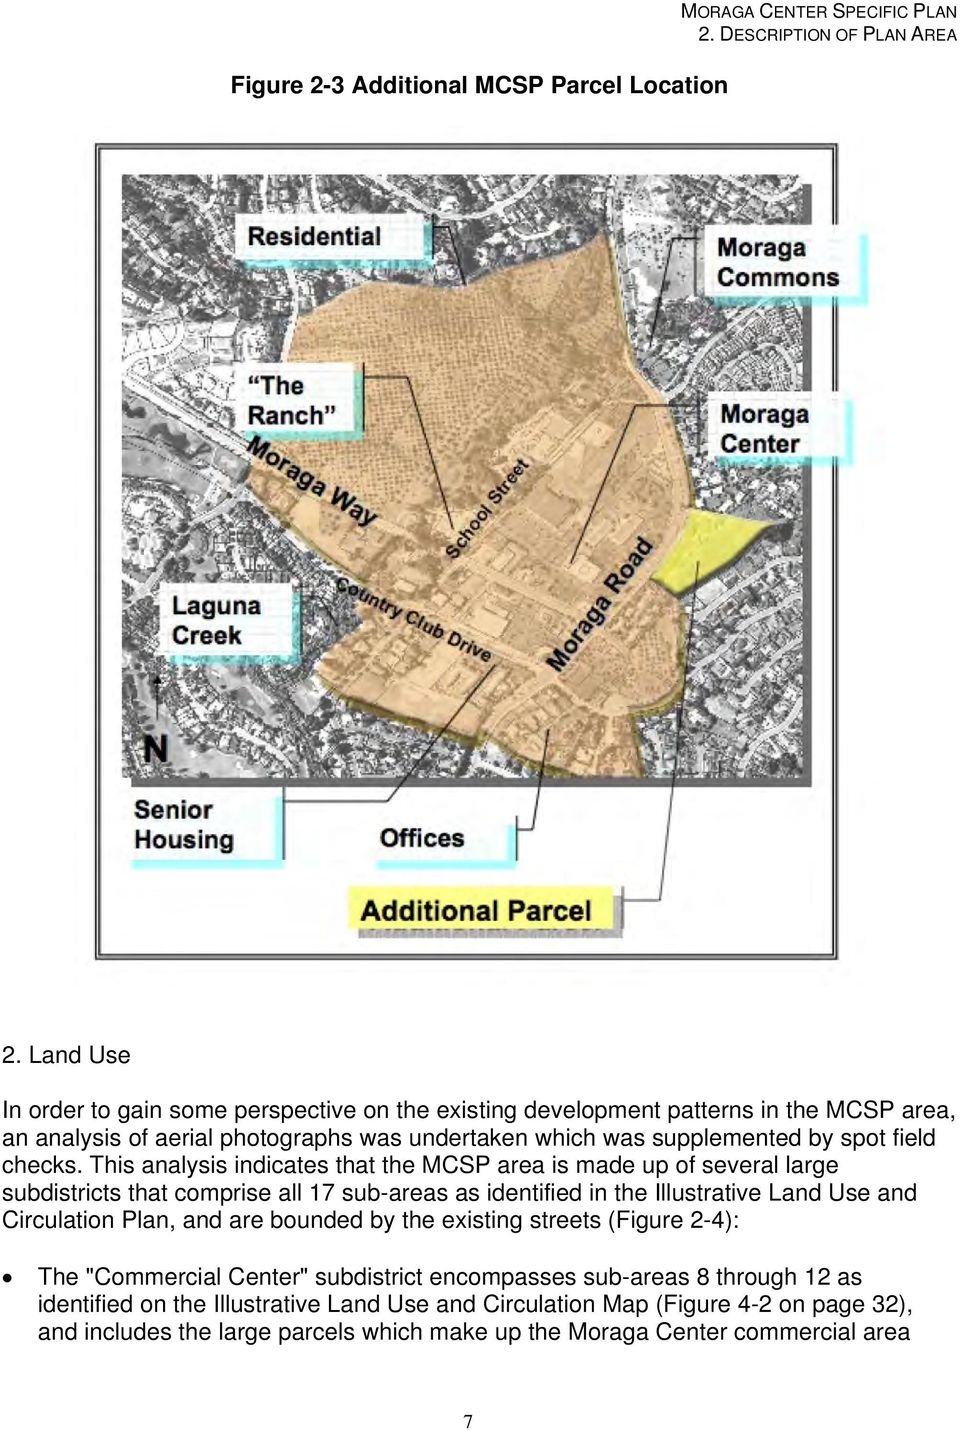 This analysis indicates that the MCSP area is made up of several large subdistricts that comprise all 17 sub-areas as identified in the Illustrative Land Use and Circulation Plan, and are